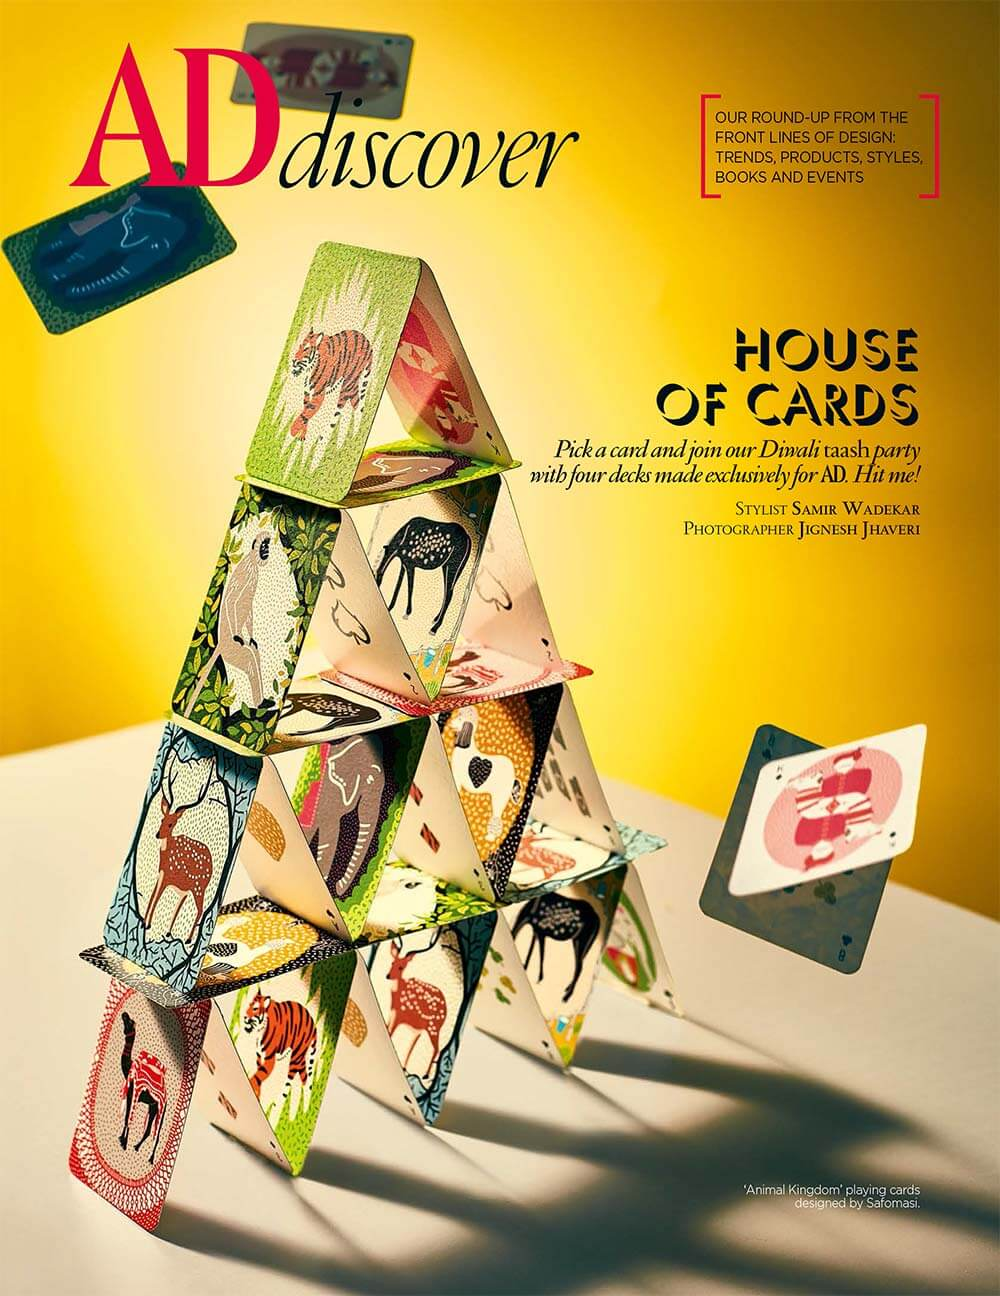 Illustrated Playing Cards Tower of Cards